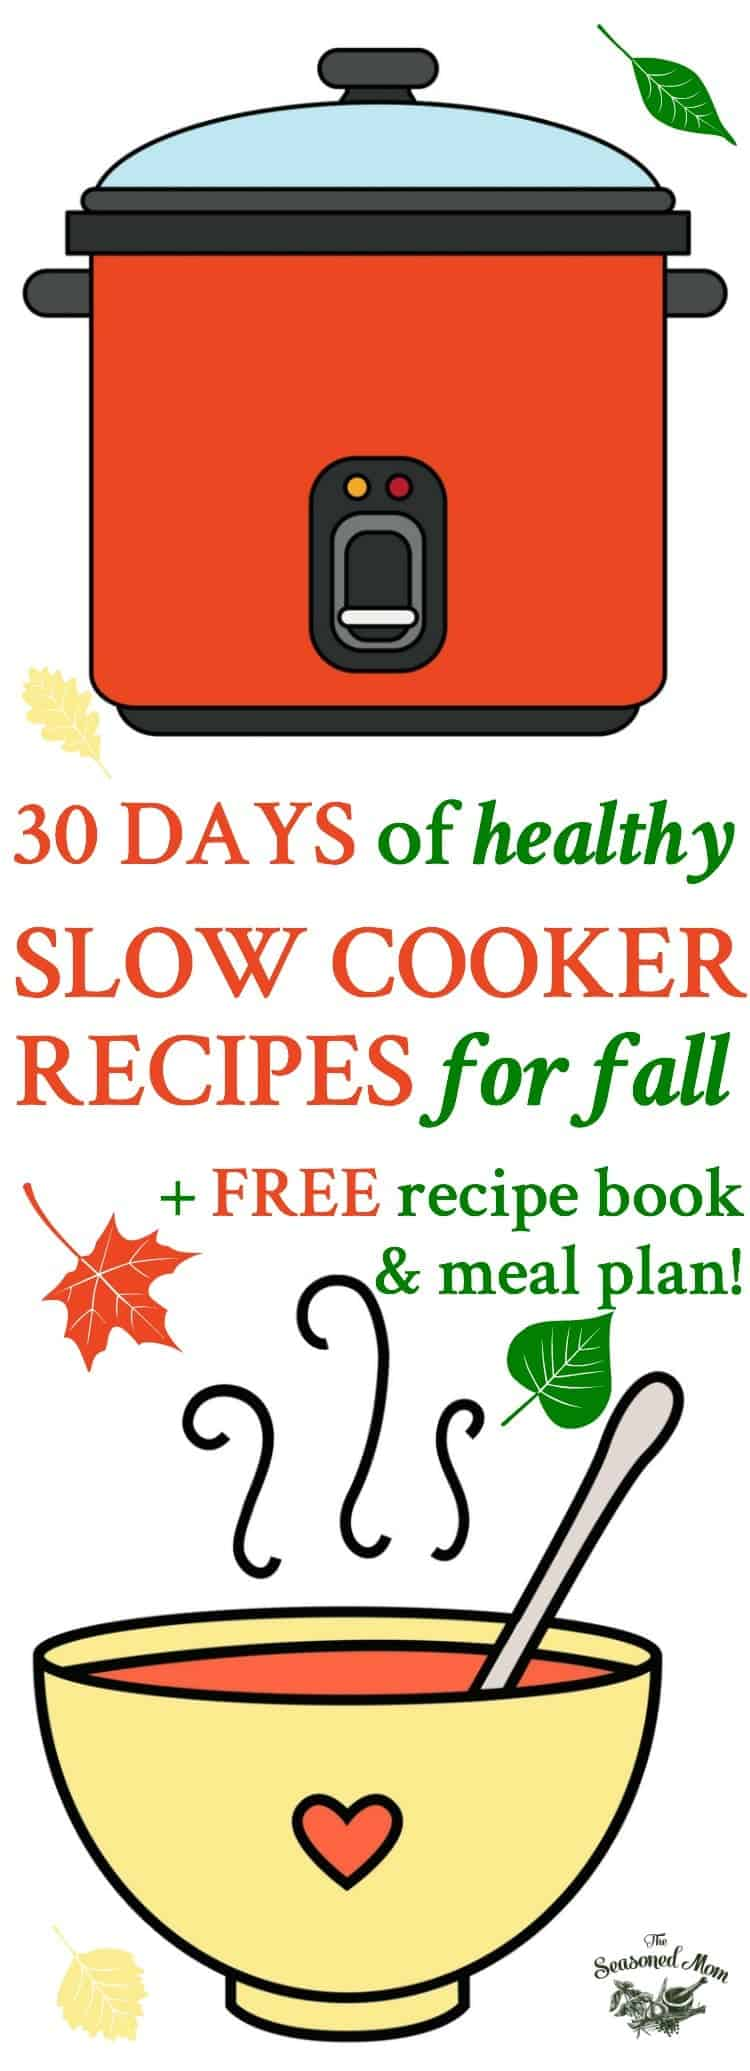 Try this complete meal plan with 30 Days of Healthy Slow Cooker Recipes for Fall, plus a free printable cookbook! Crock Pot Recipes | Dinner Ideas | Healthy Dinner Recipes